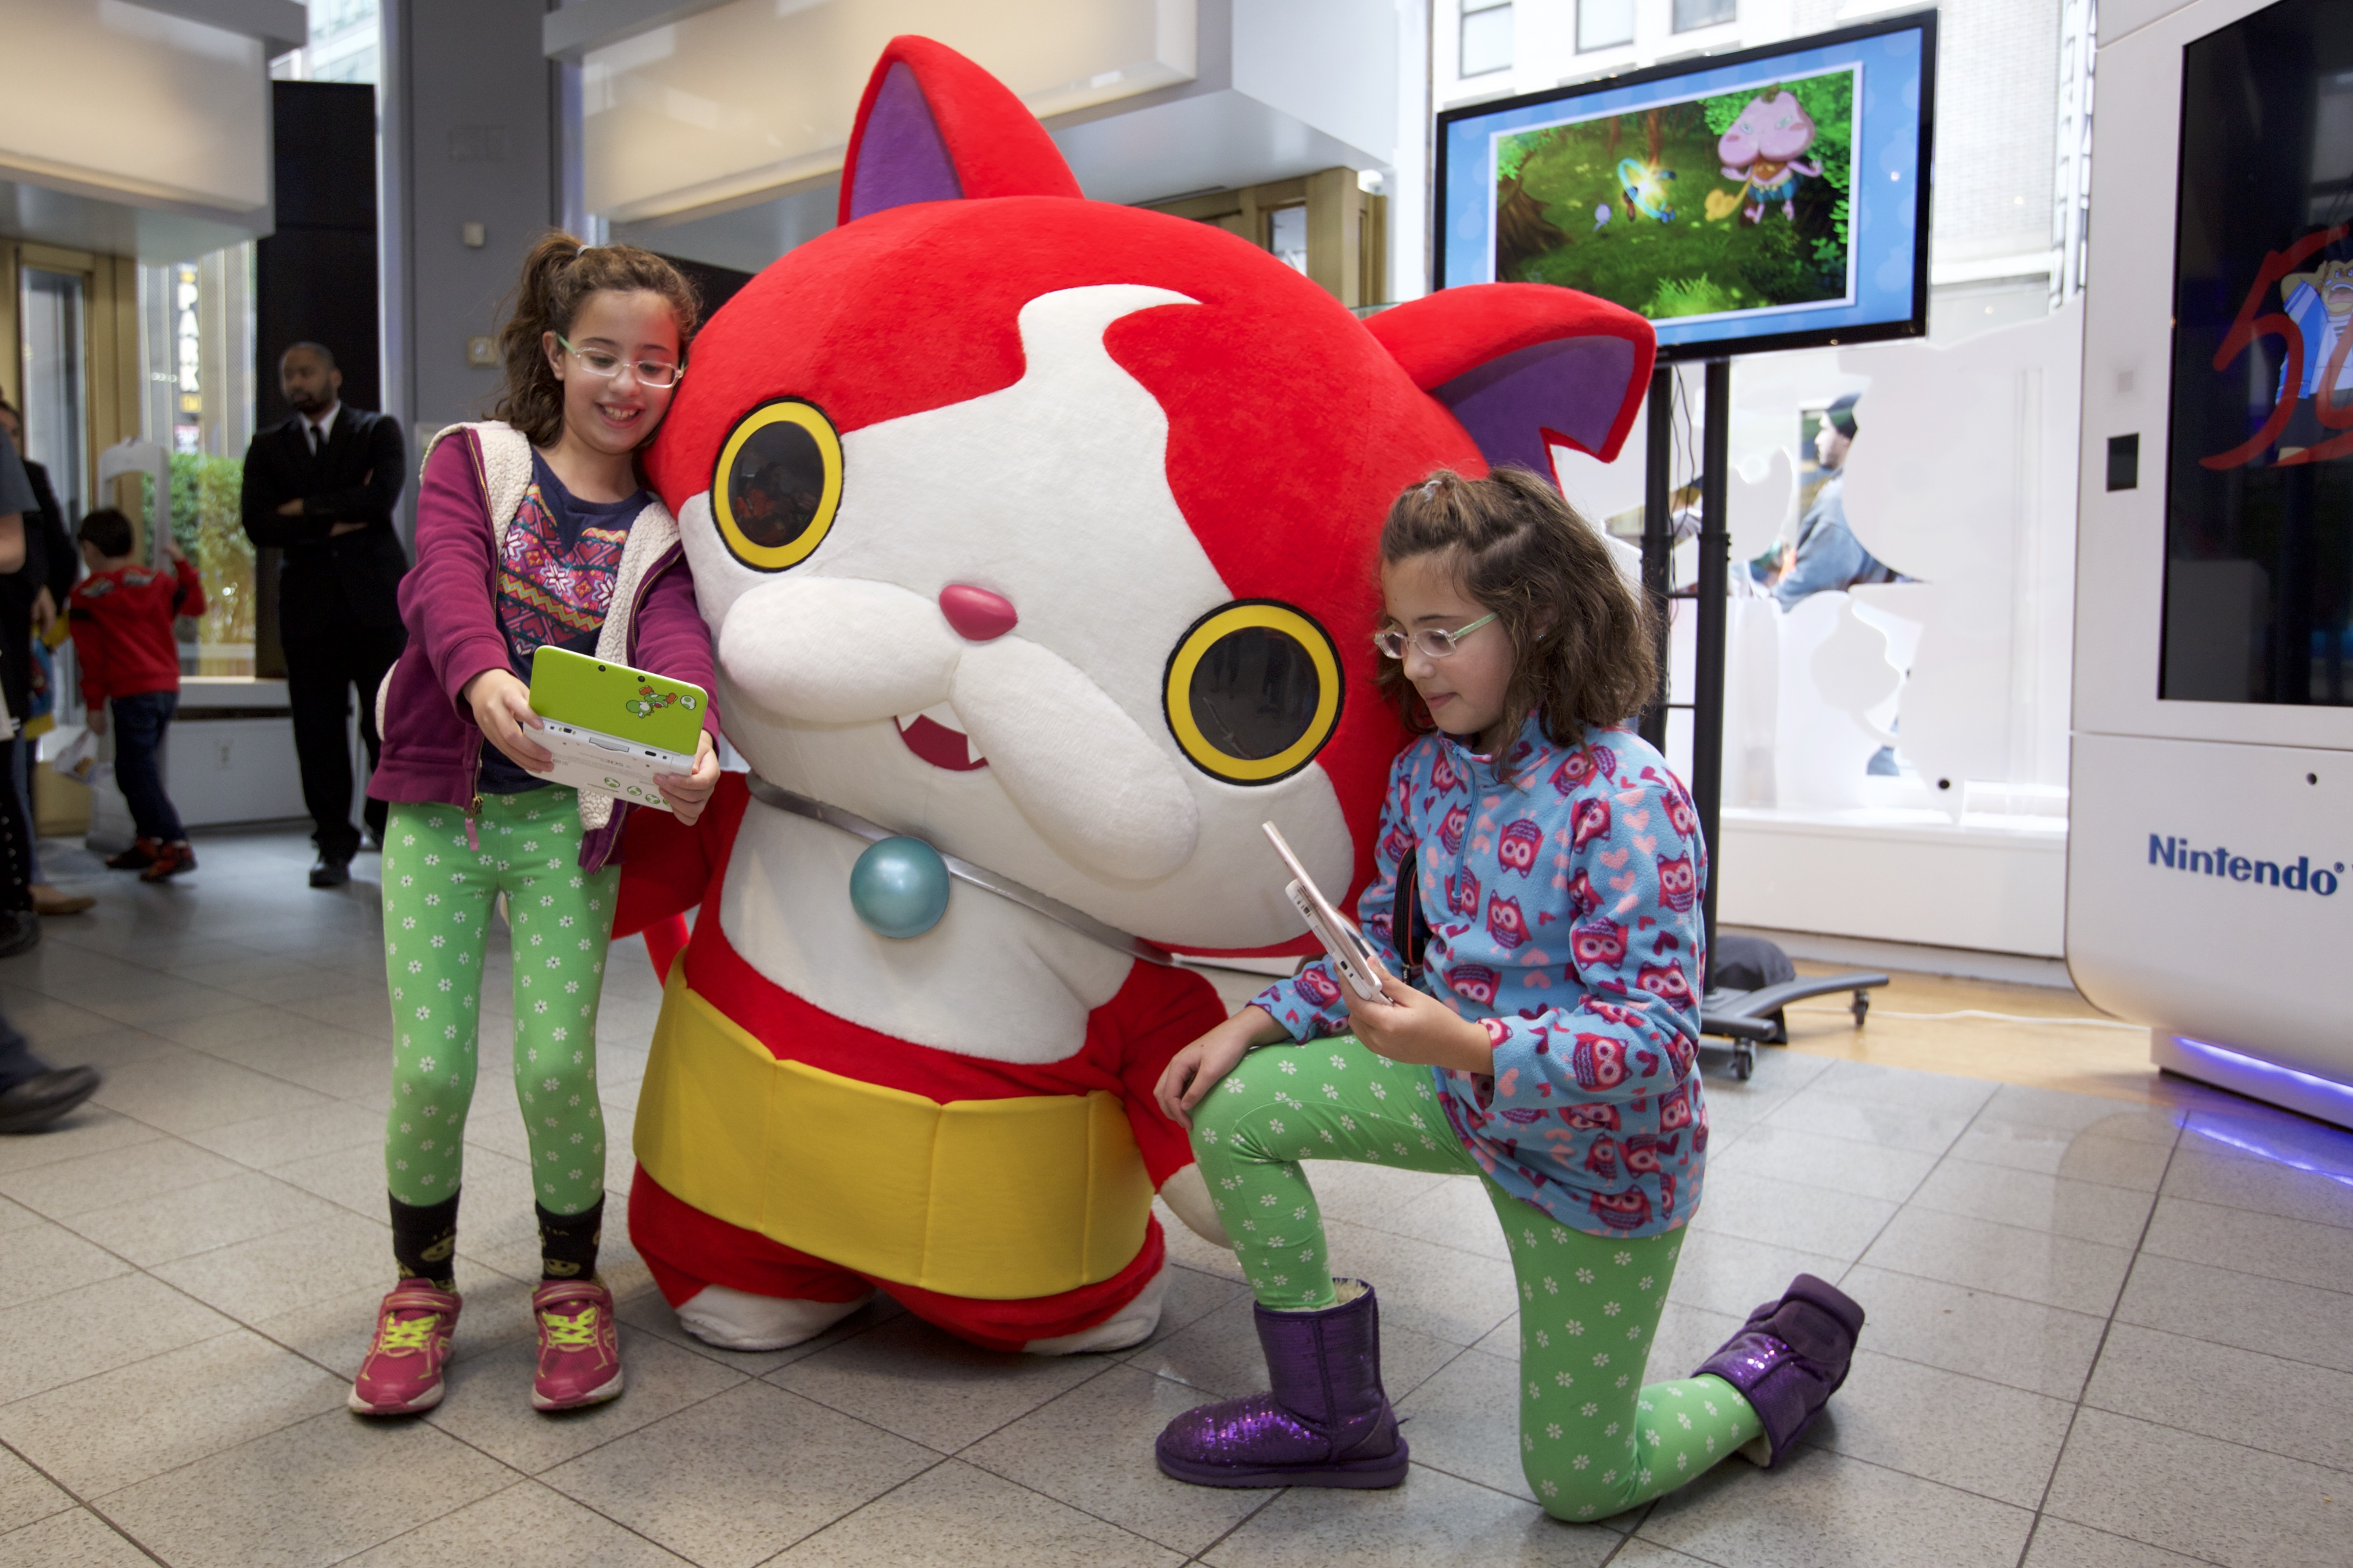 In this photo provided by Nintendo of America, fans meet and interact with YO-KAI WATCH character Jibanyan at Nintendo World in New York on Nov. 7, 2015, as part of the YO-KAI WATCH launch event. YO-KAI WATCH launched on Nov. 6, 2015 and is available exclusively for the Nintendo 3DS family of systems.